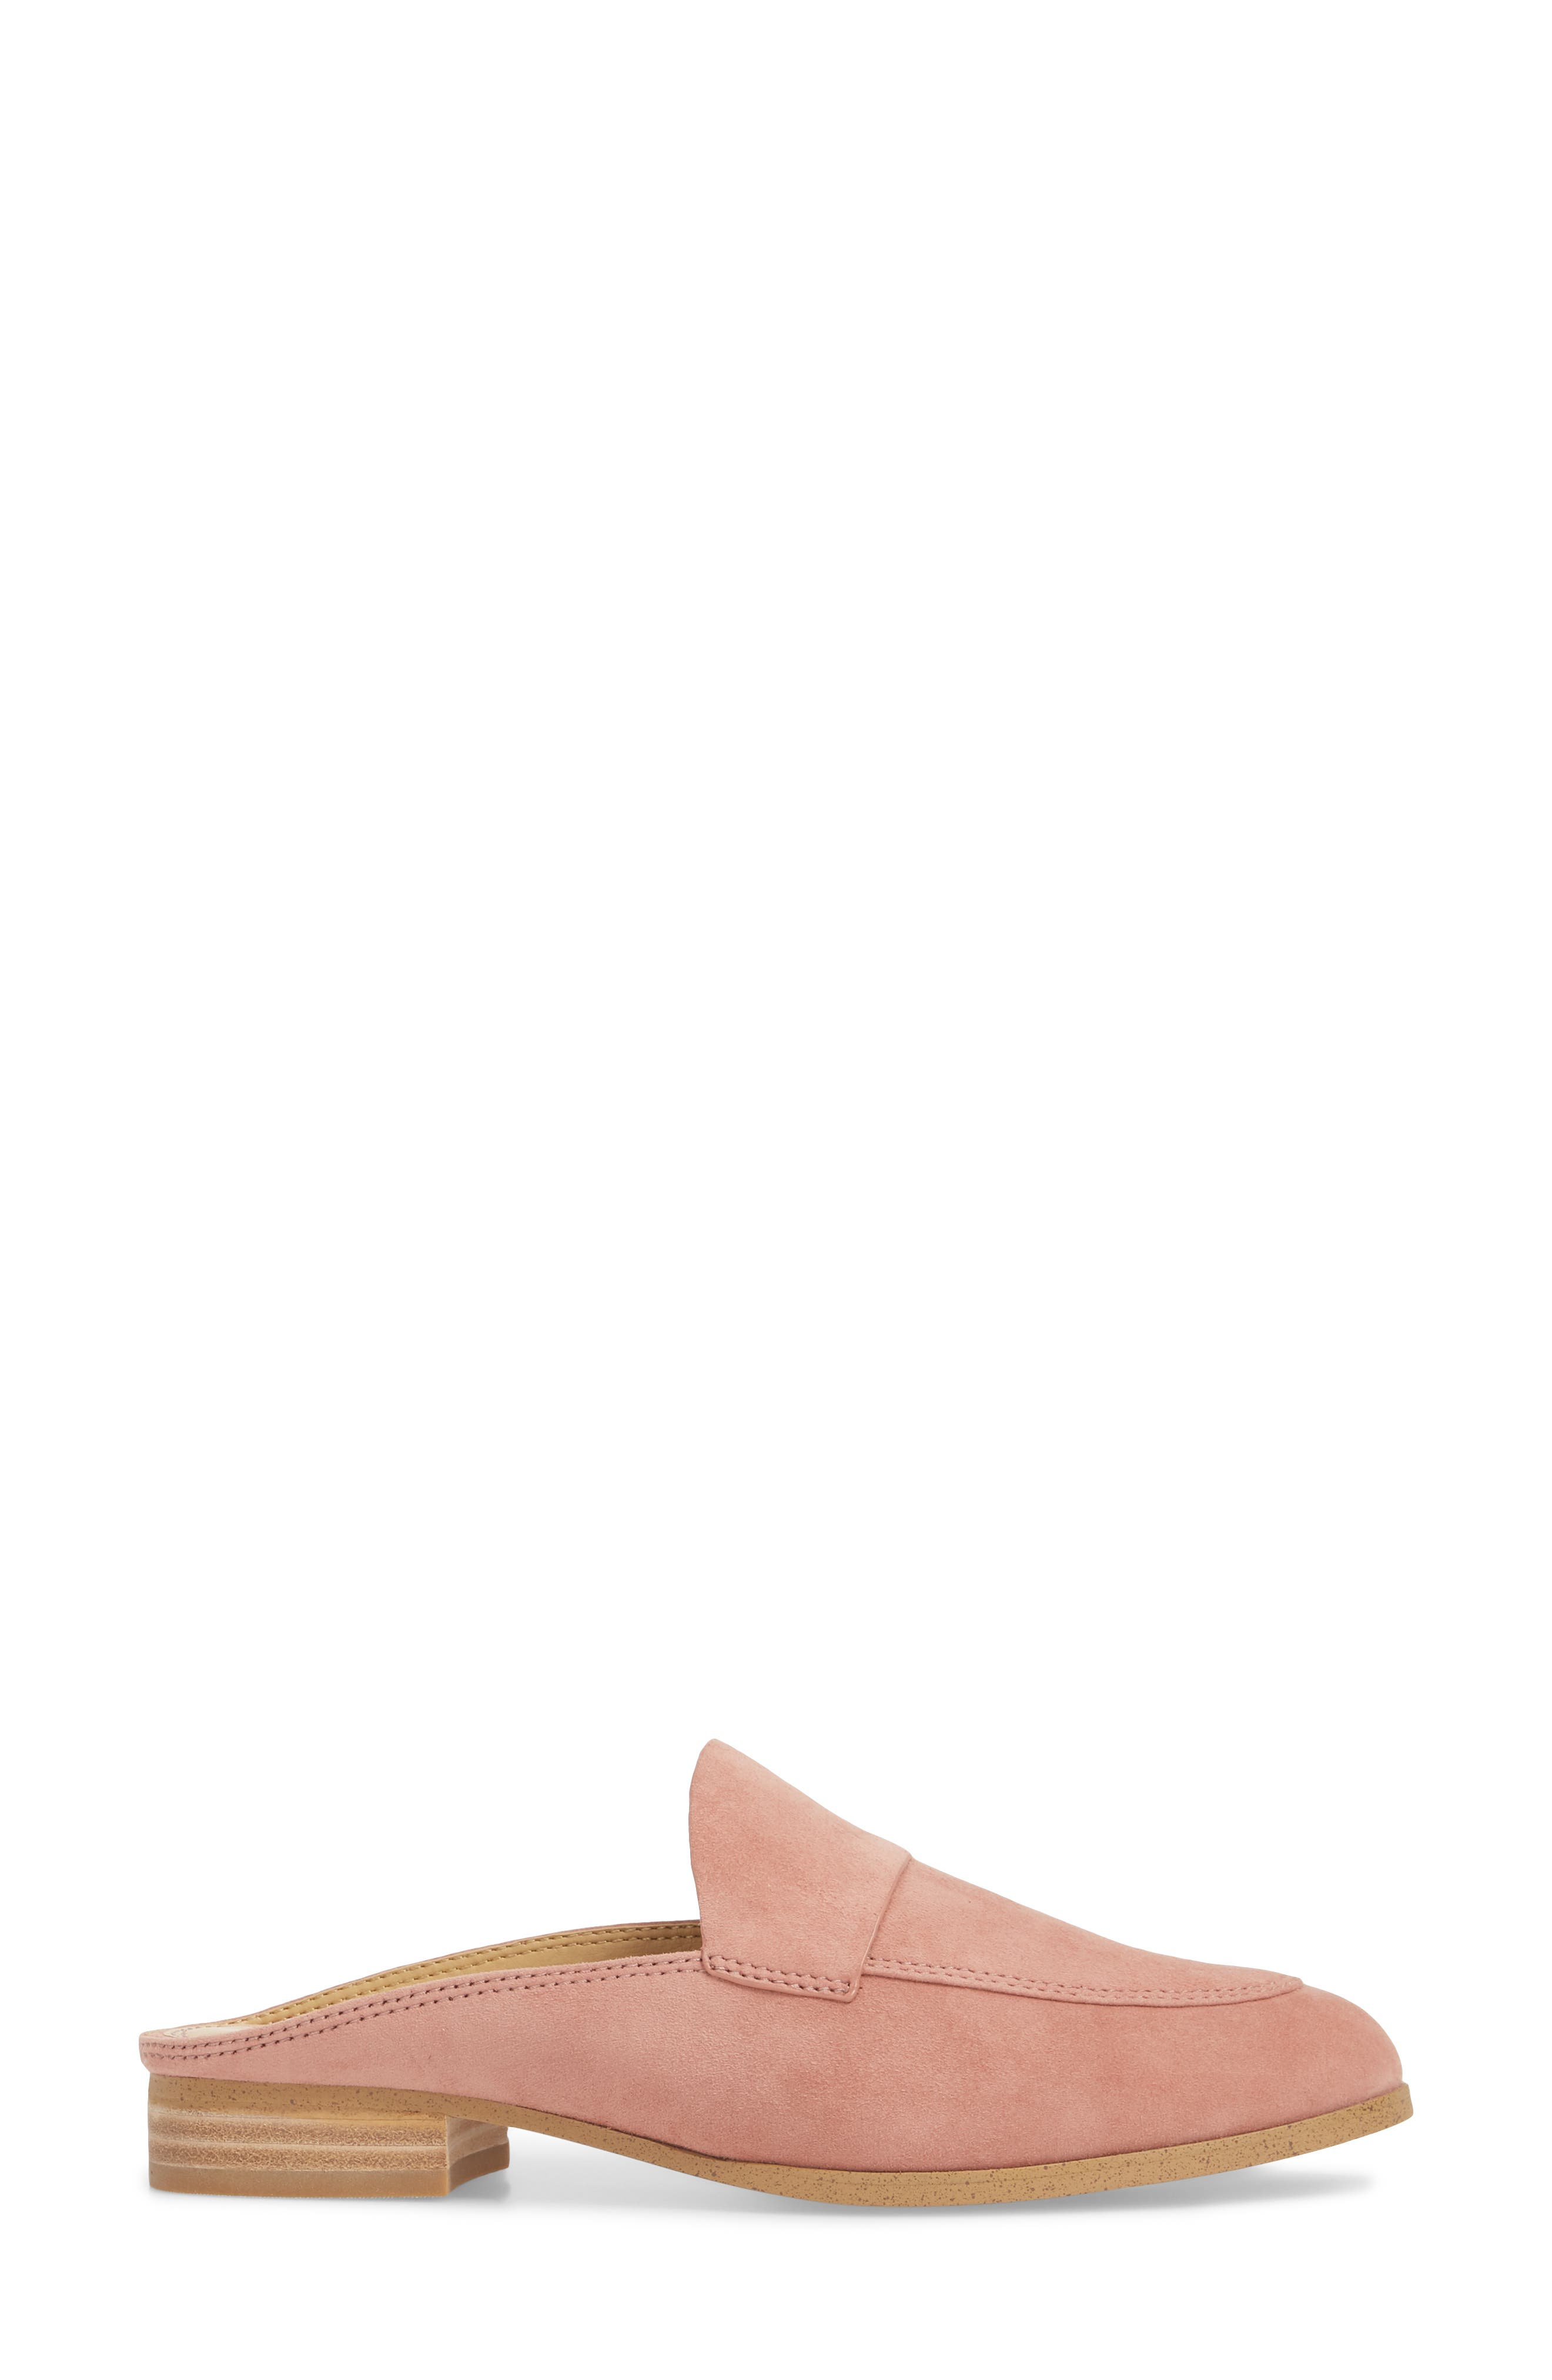 Nima Loafer Mule,                             Alternate thumbnail 3, color,                             ROSE TAUPE SUEDE